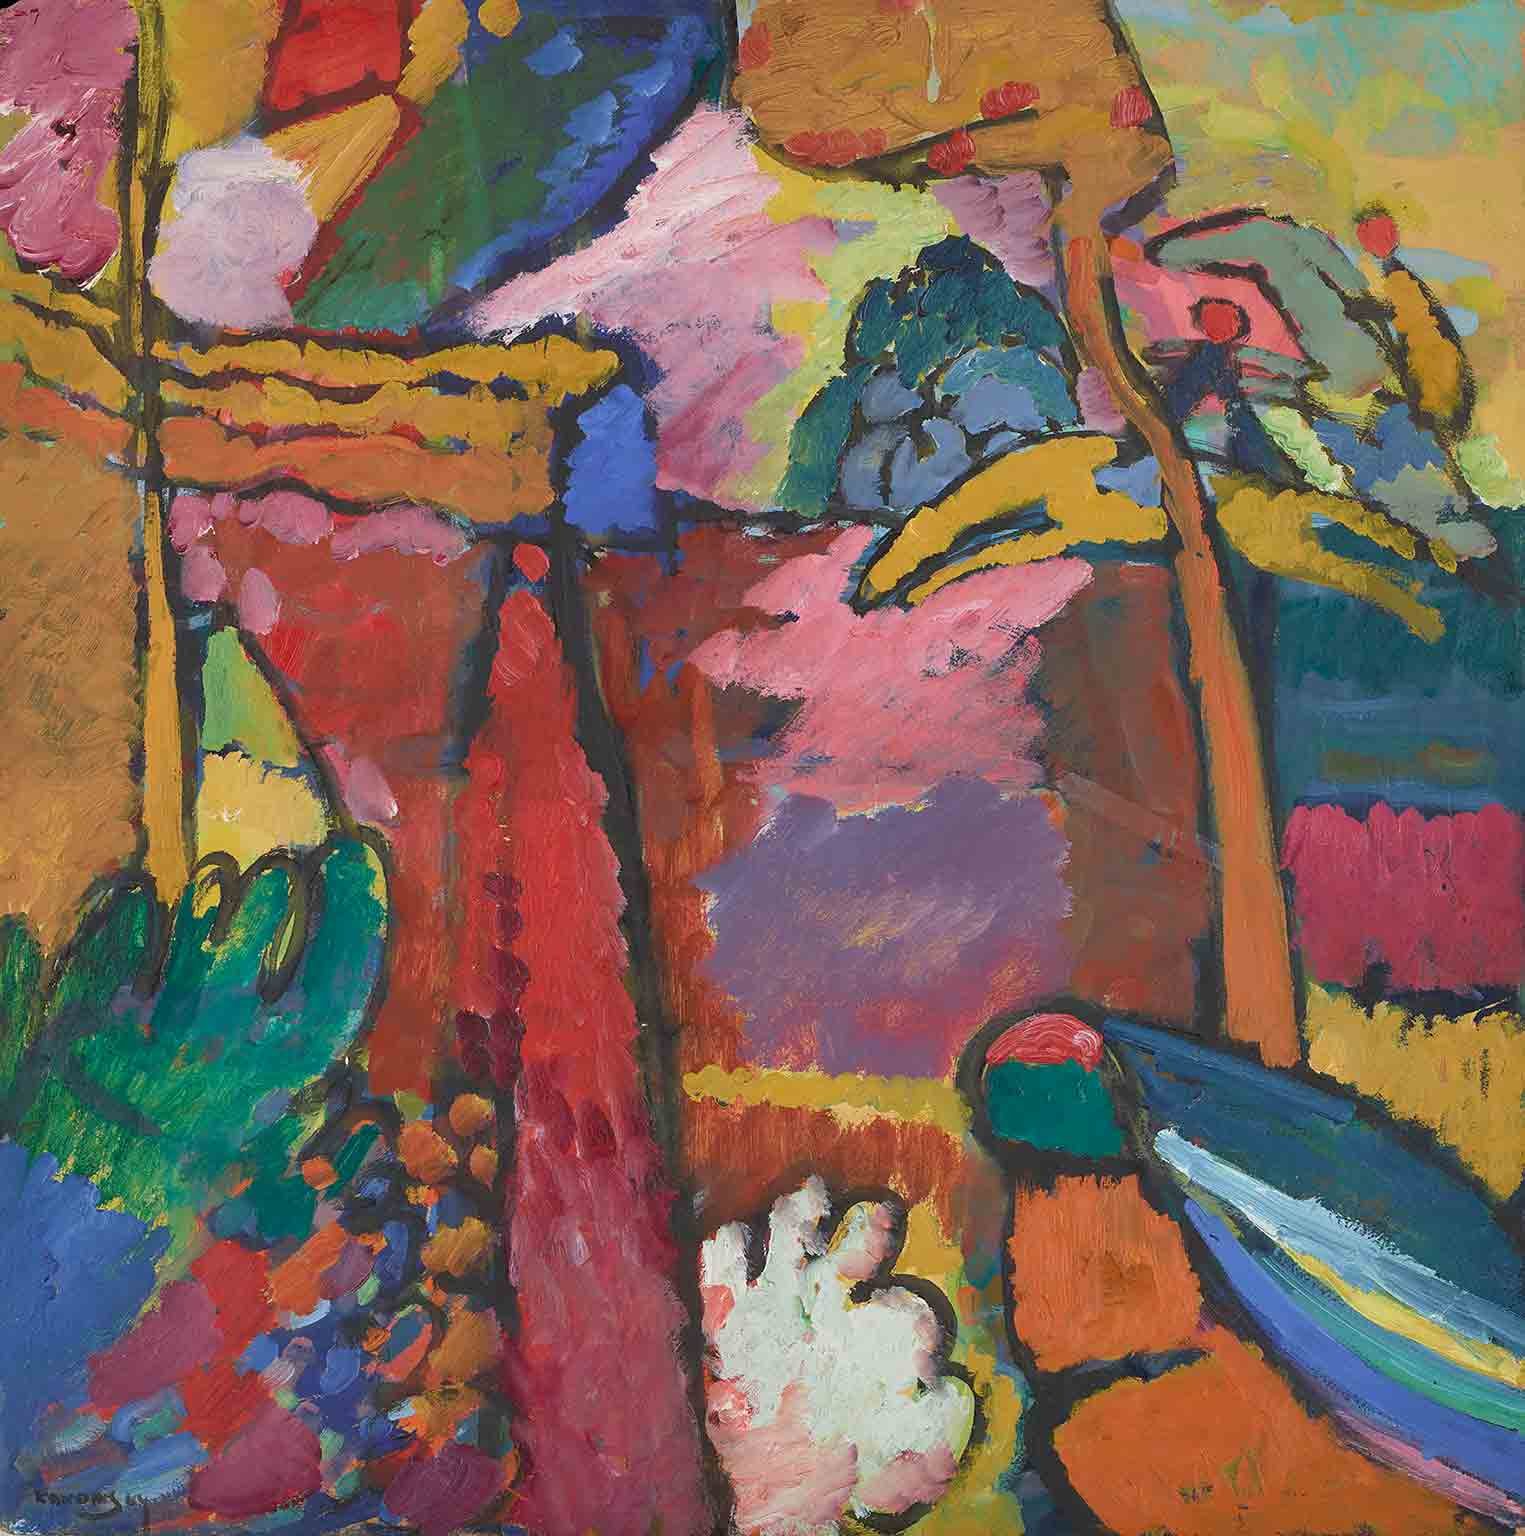 3. Delacroix and the Rise of Modern Art, National Gallery, 50% off with a National Art Pass - Vassily Kandinsky, Study for Improvisation V, 1910. The Minneapolis Institute of Art